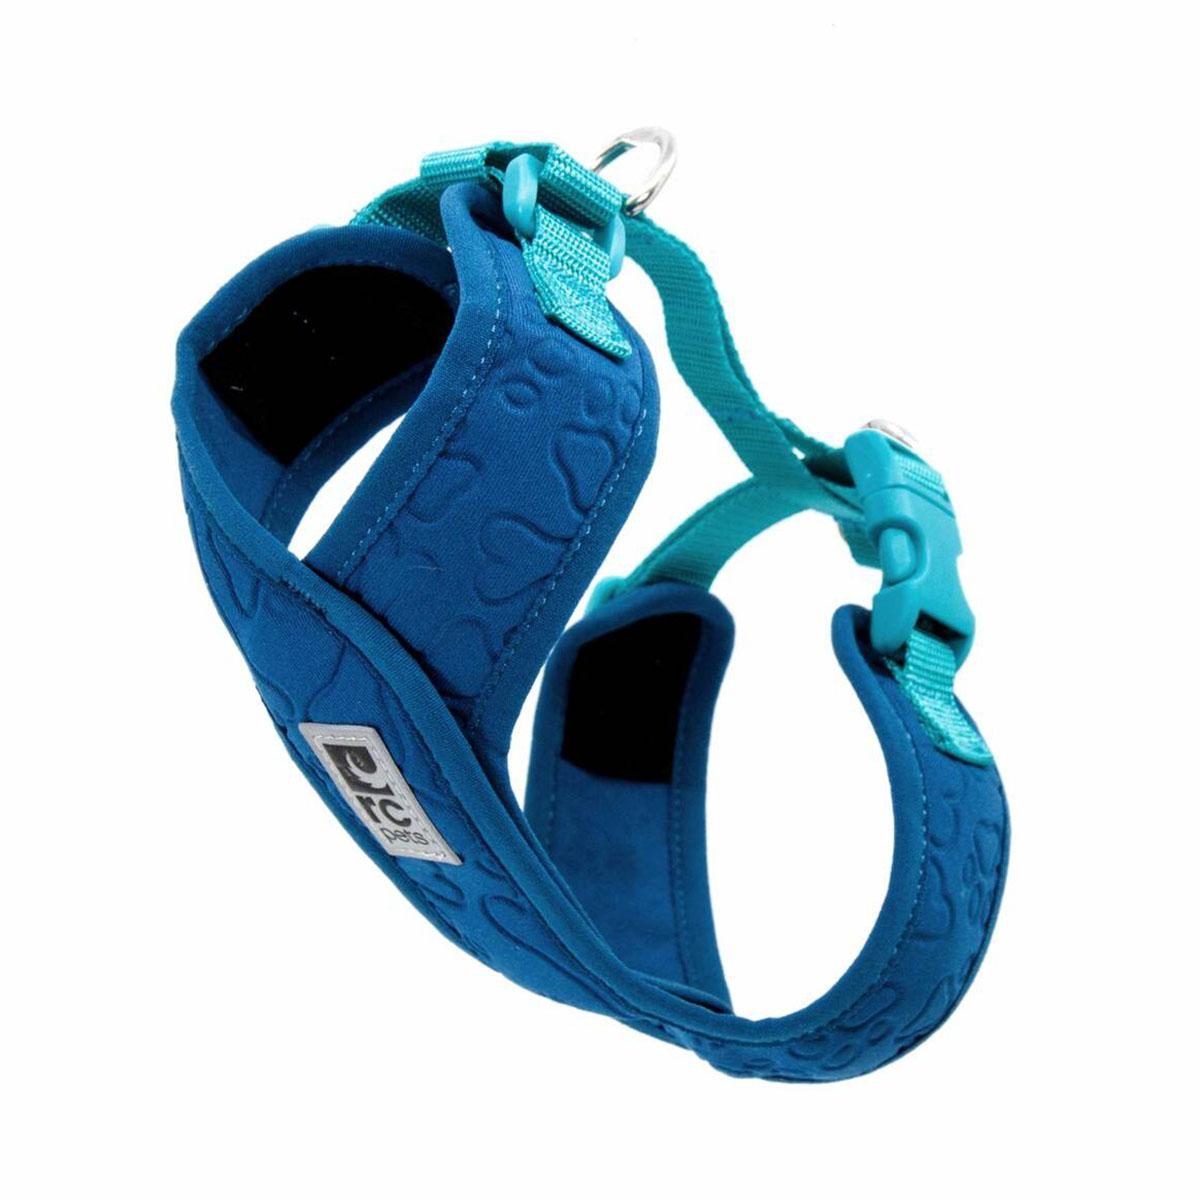 RC Pet Products Swift Comfort Dog Harness, Darl Teal/Teal, Small